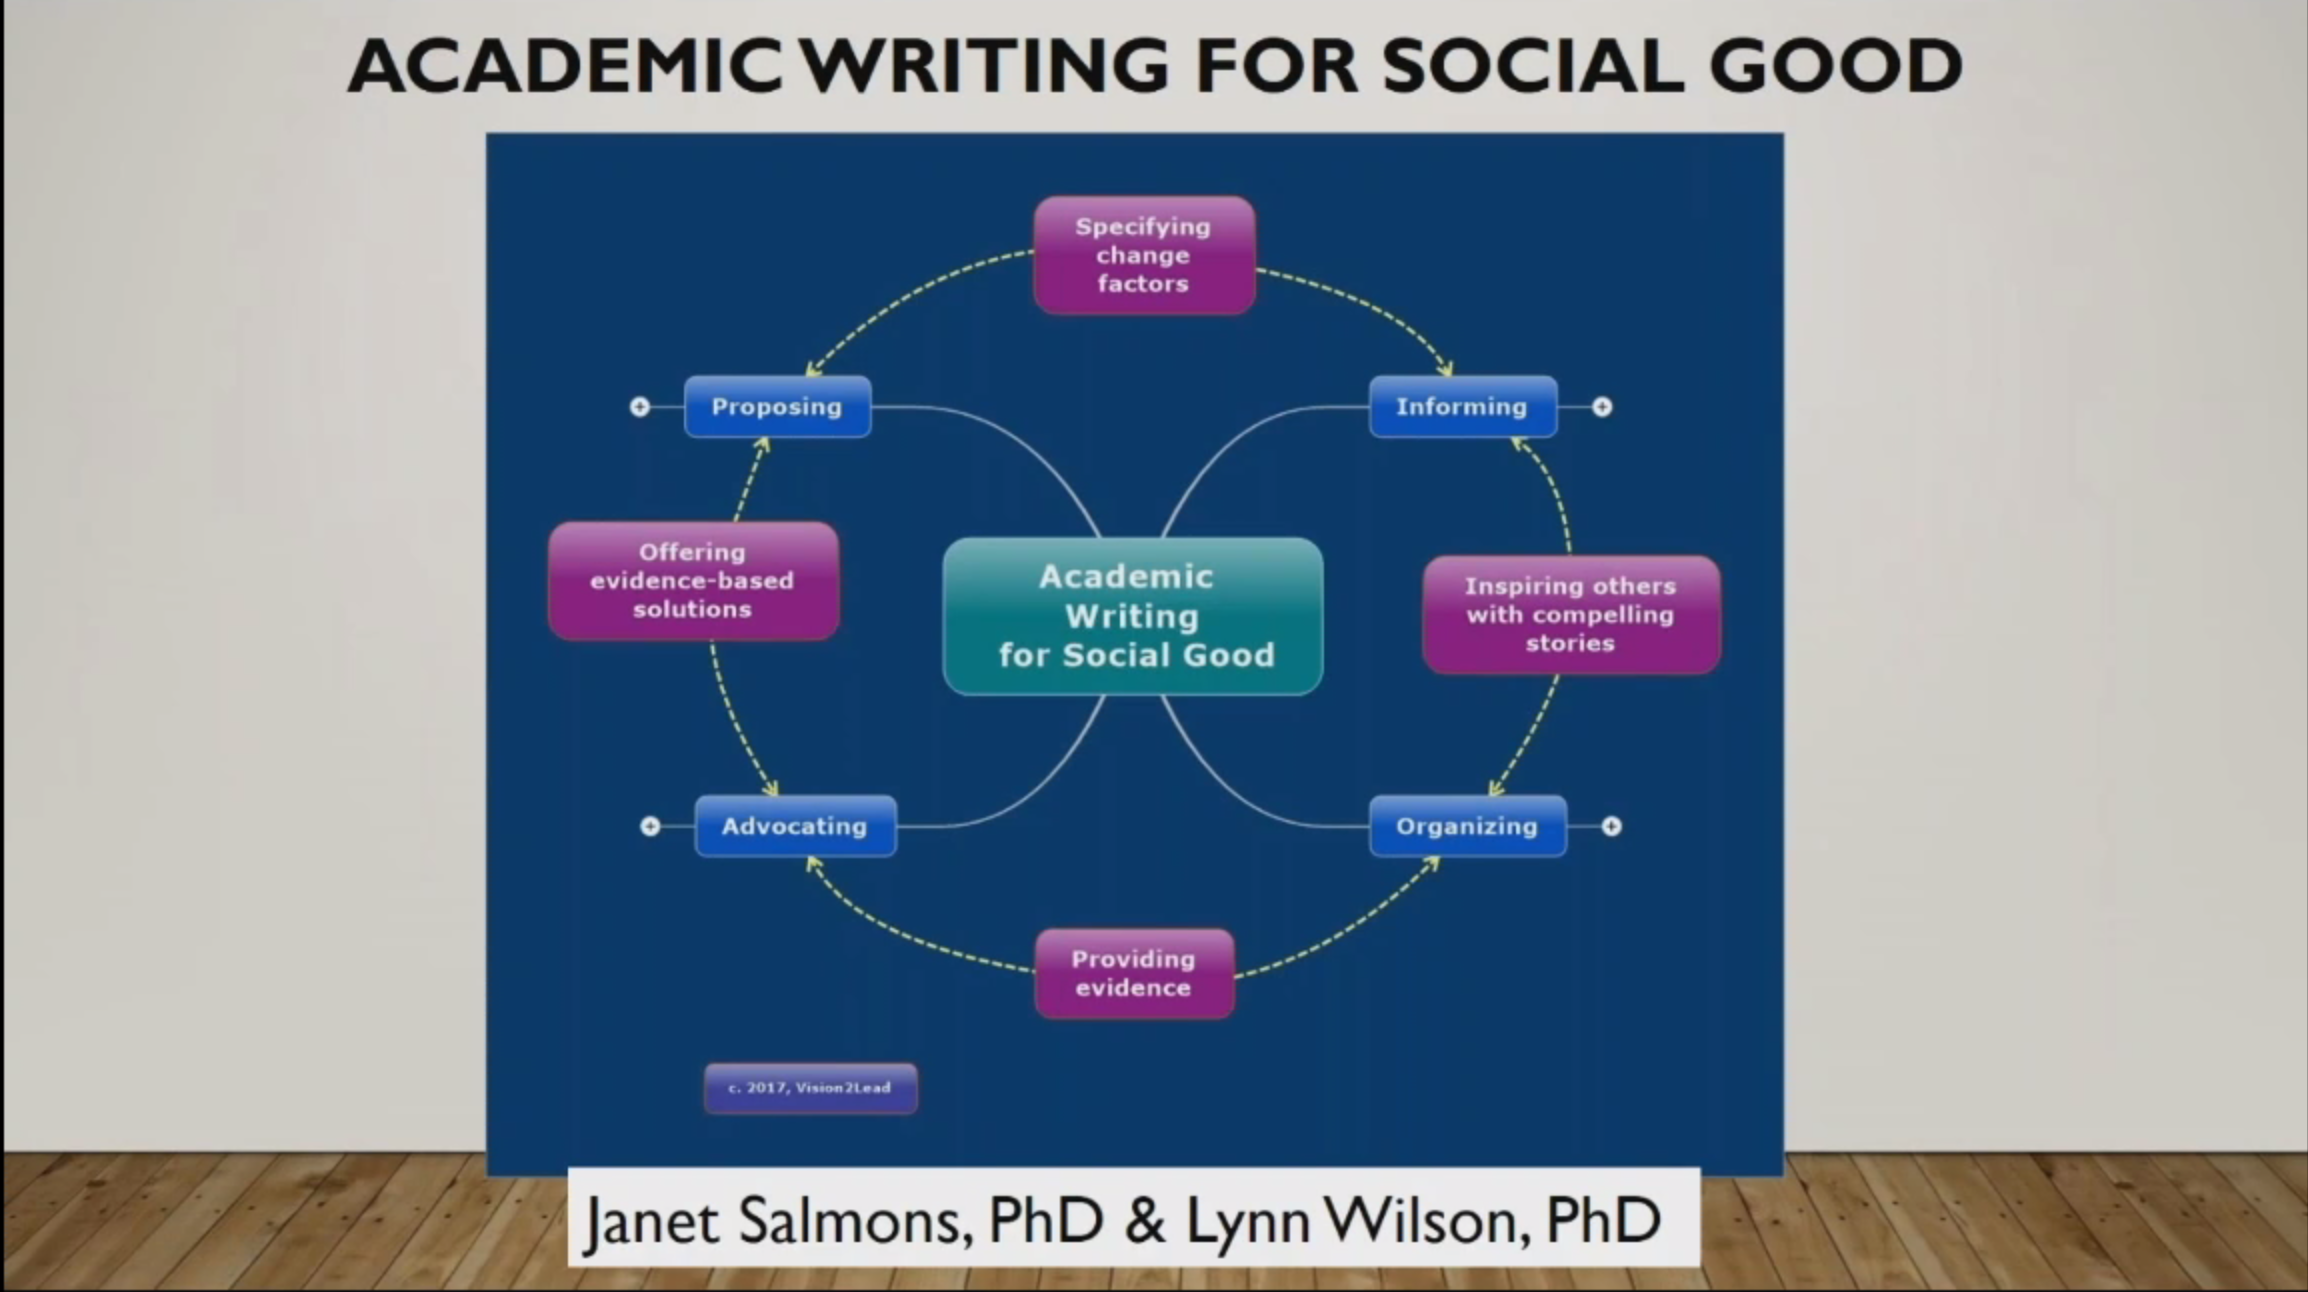 Academic Writing for Social Good